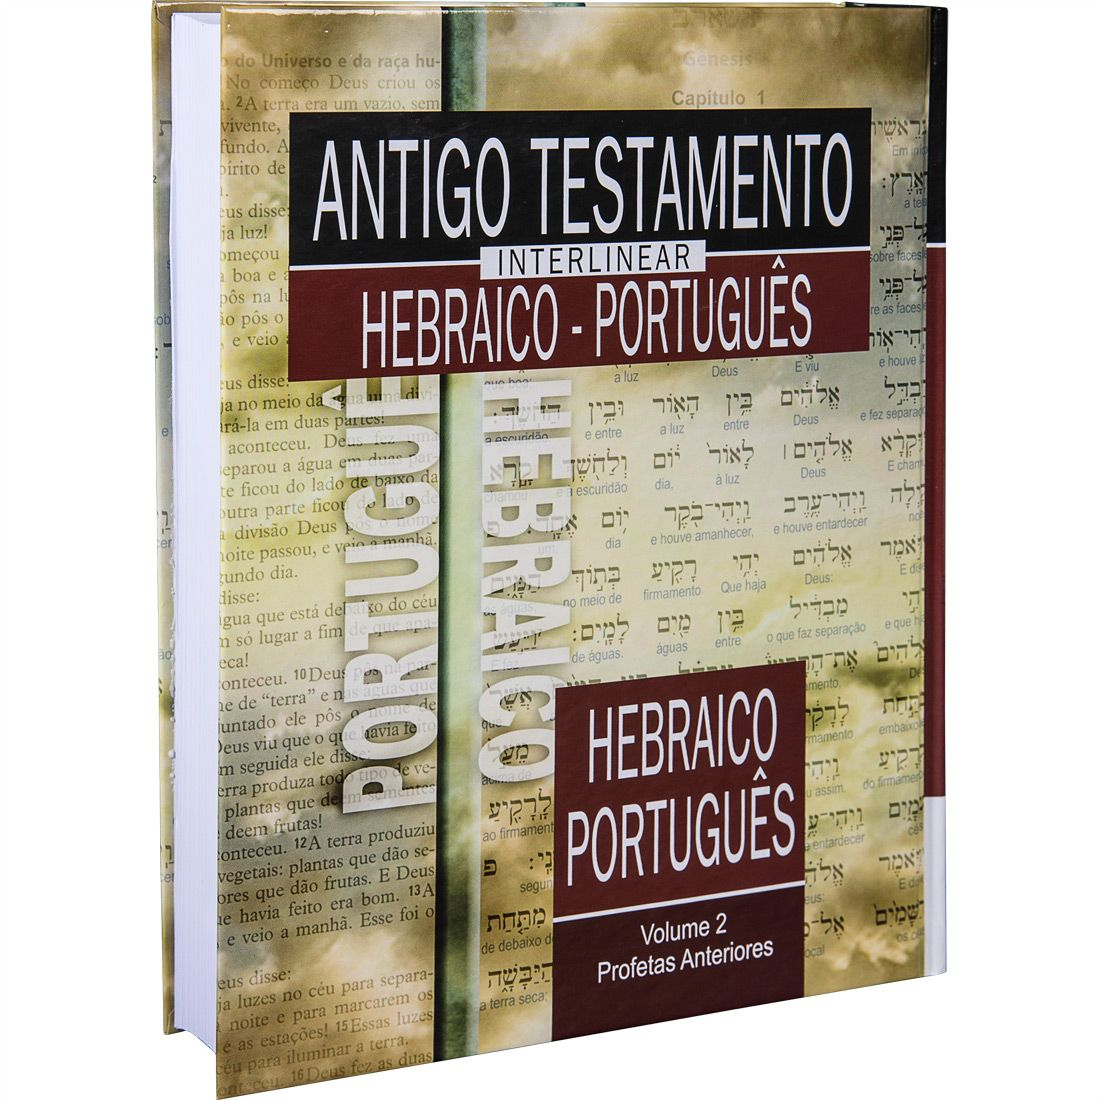 Antigo Testamento Interlinear Hebraico-Português Vol. 2 - Profetas Anteriores